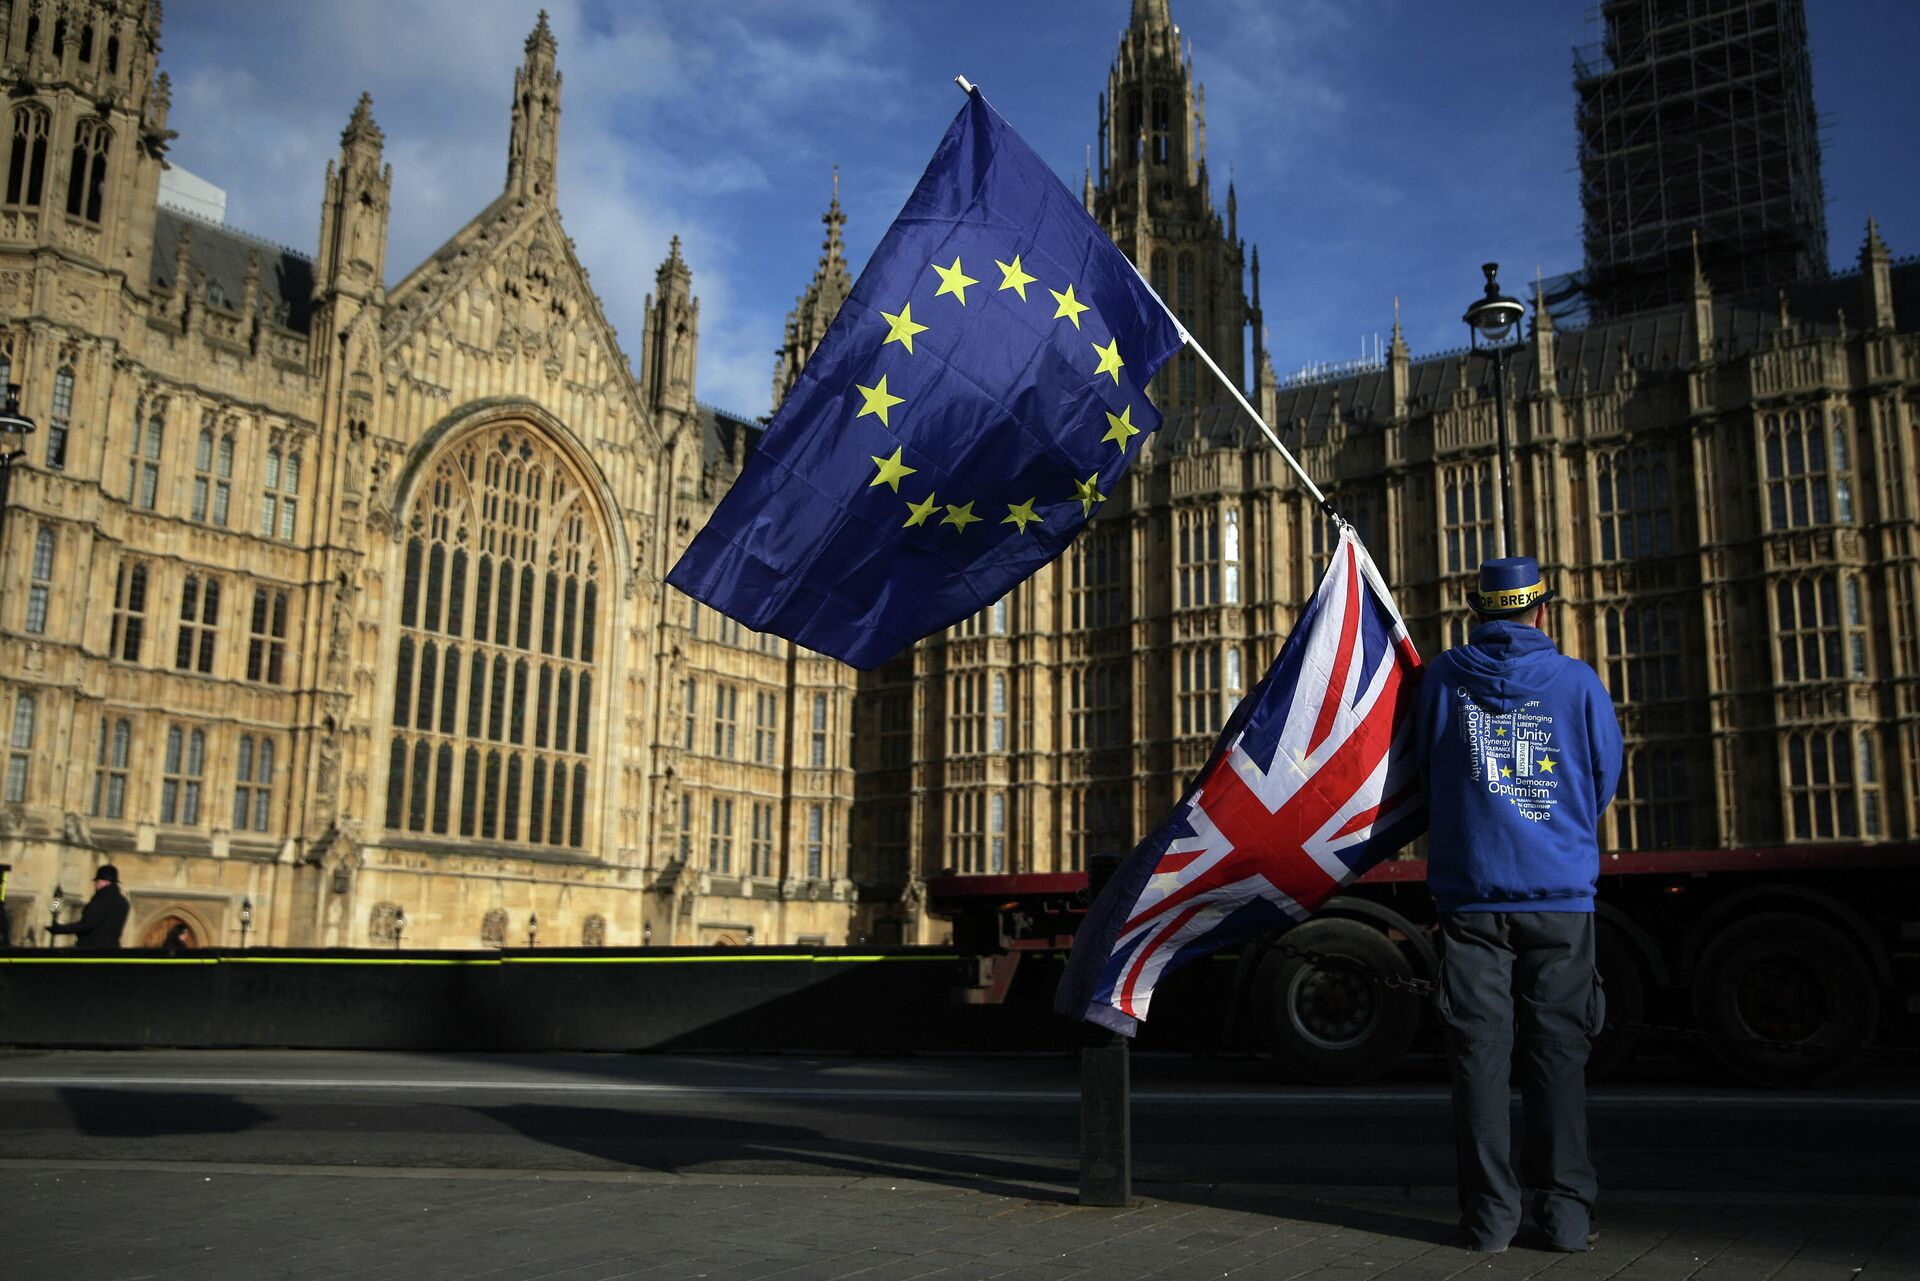 Pro-European Union,(EU), anti-Brexit demonstrator Steve Bray holds the EU and UK flags outside the Houses of Parliament, in central London on January 22, 2018 - Sputnik International, 1920, 14.10.2021